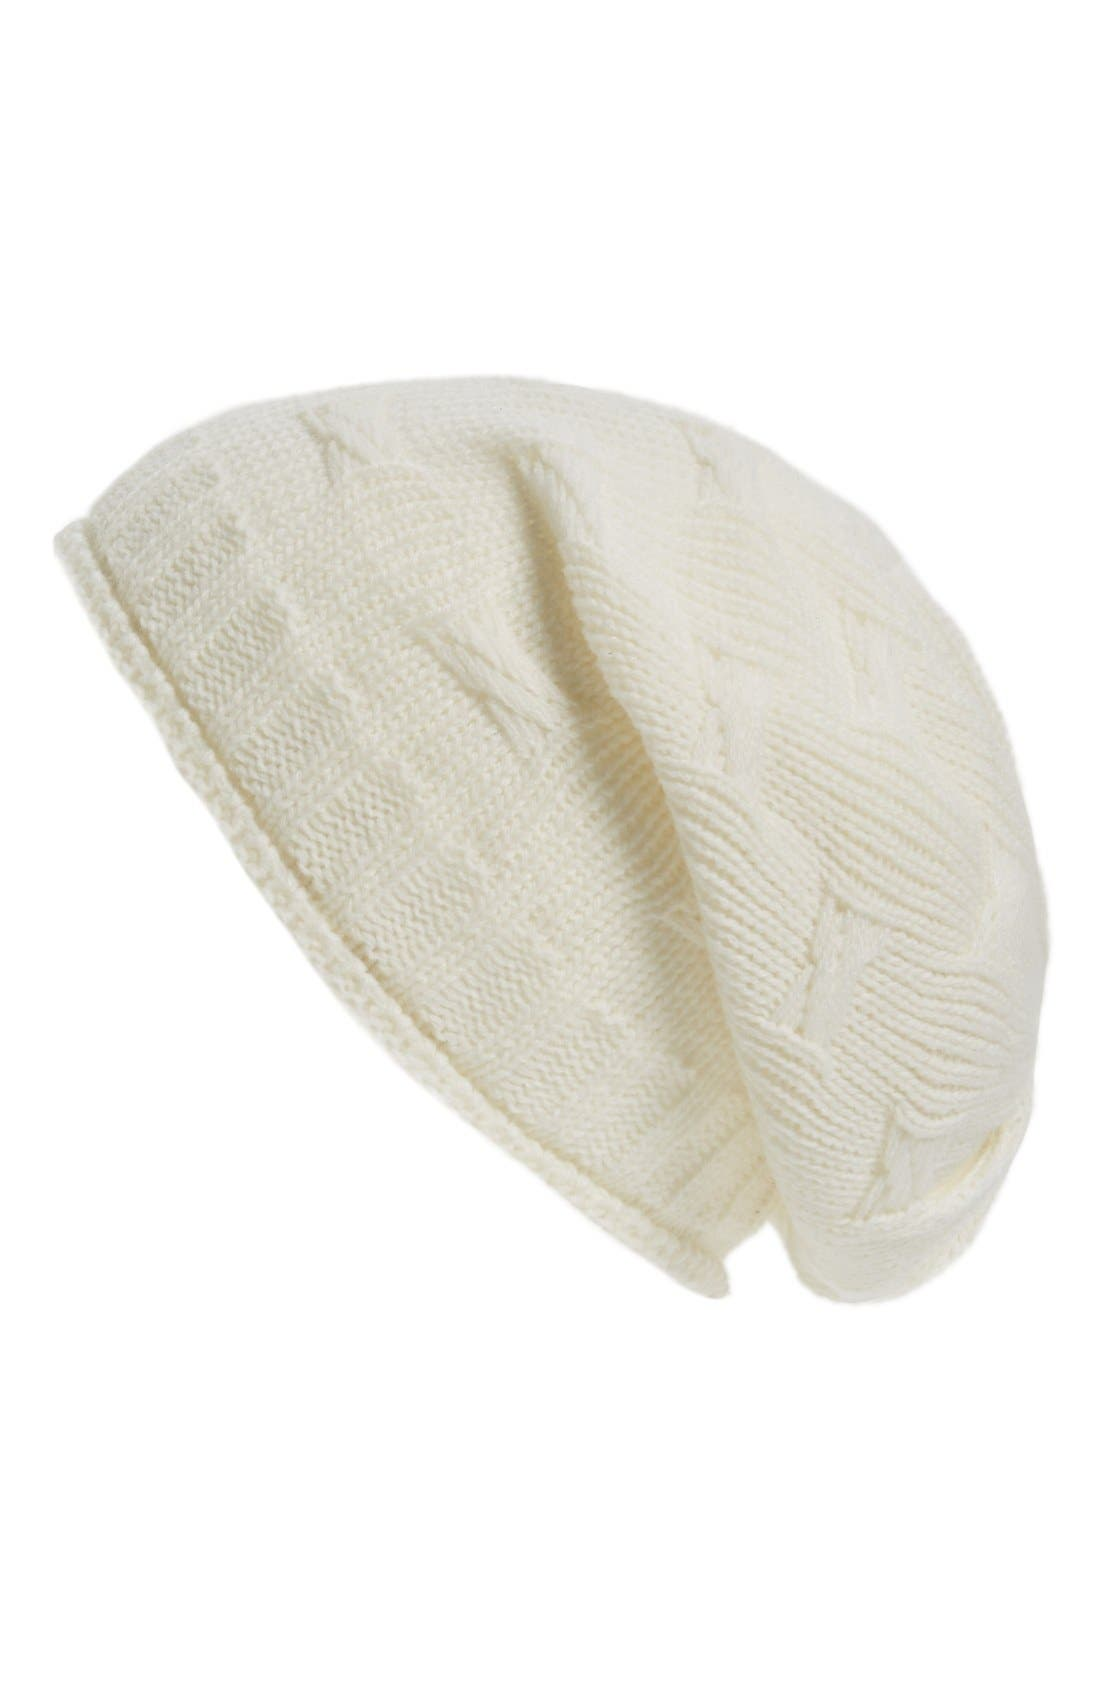 Alternate Image 1 Selected - David & Young Braid Knit Beanie (Juniors)